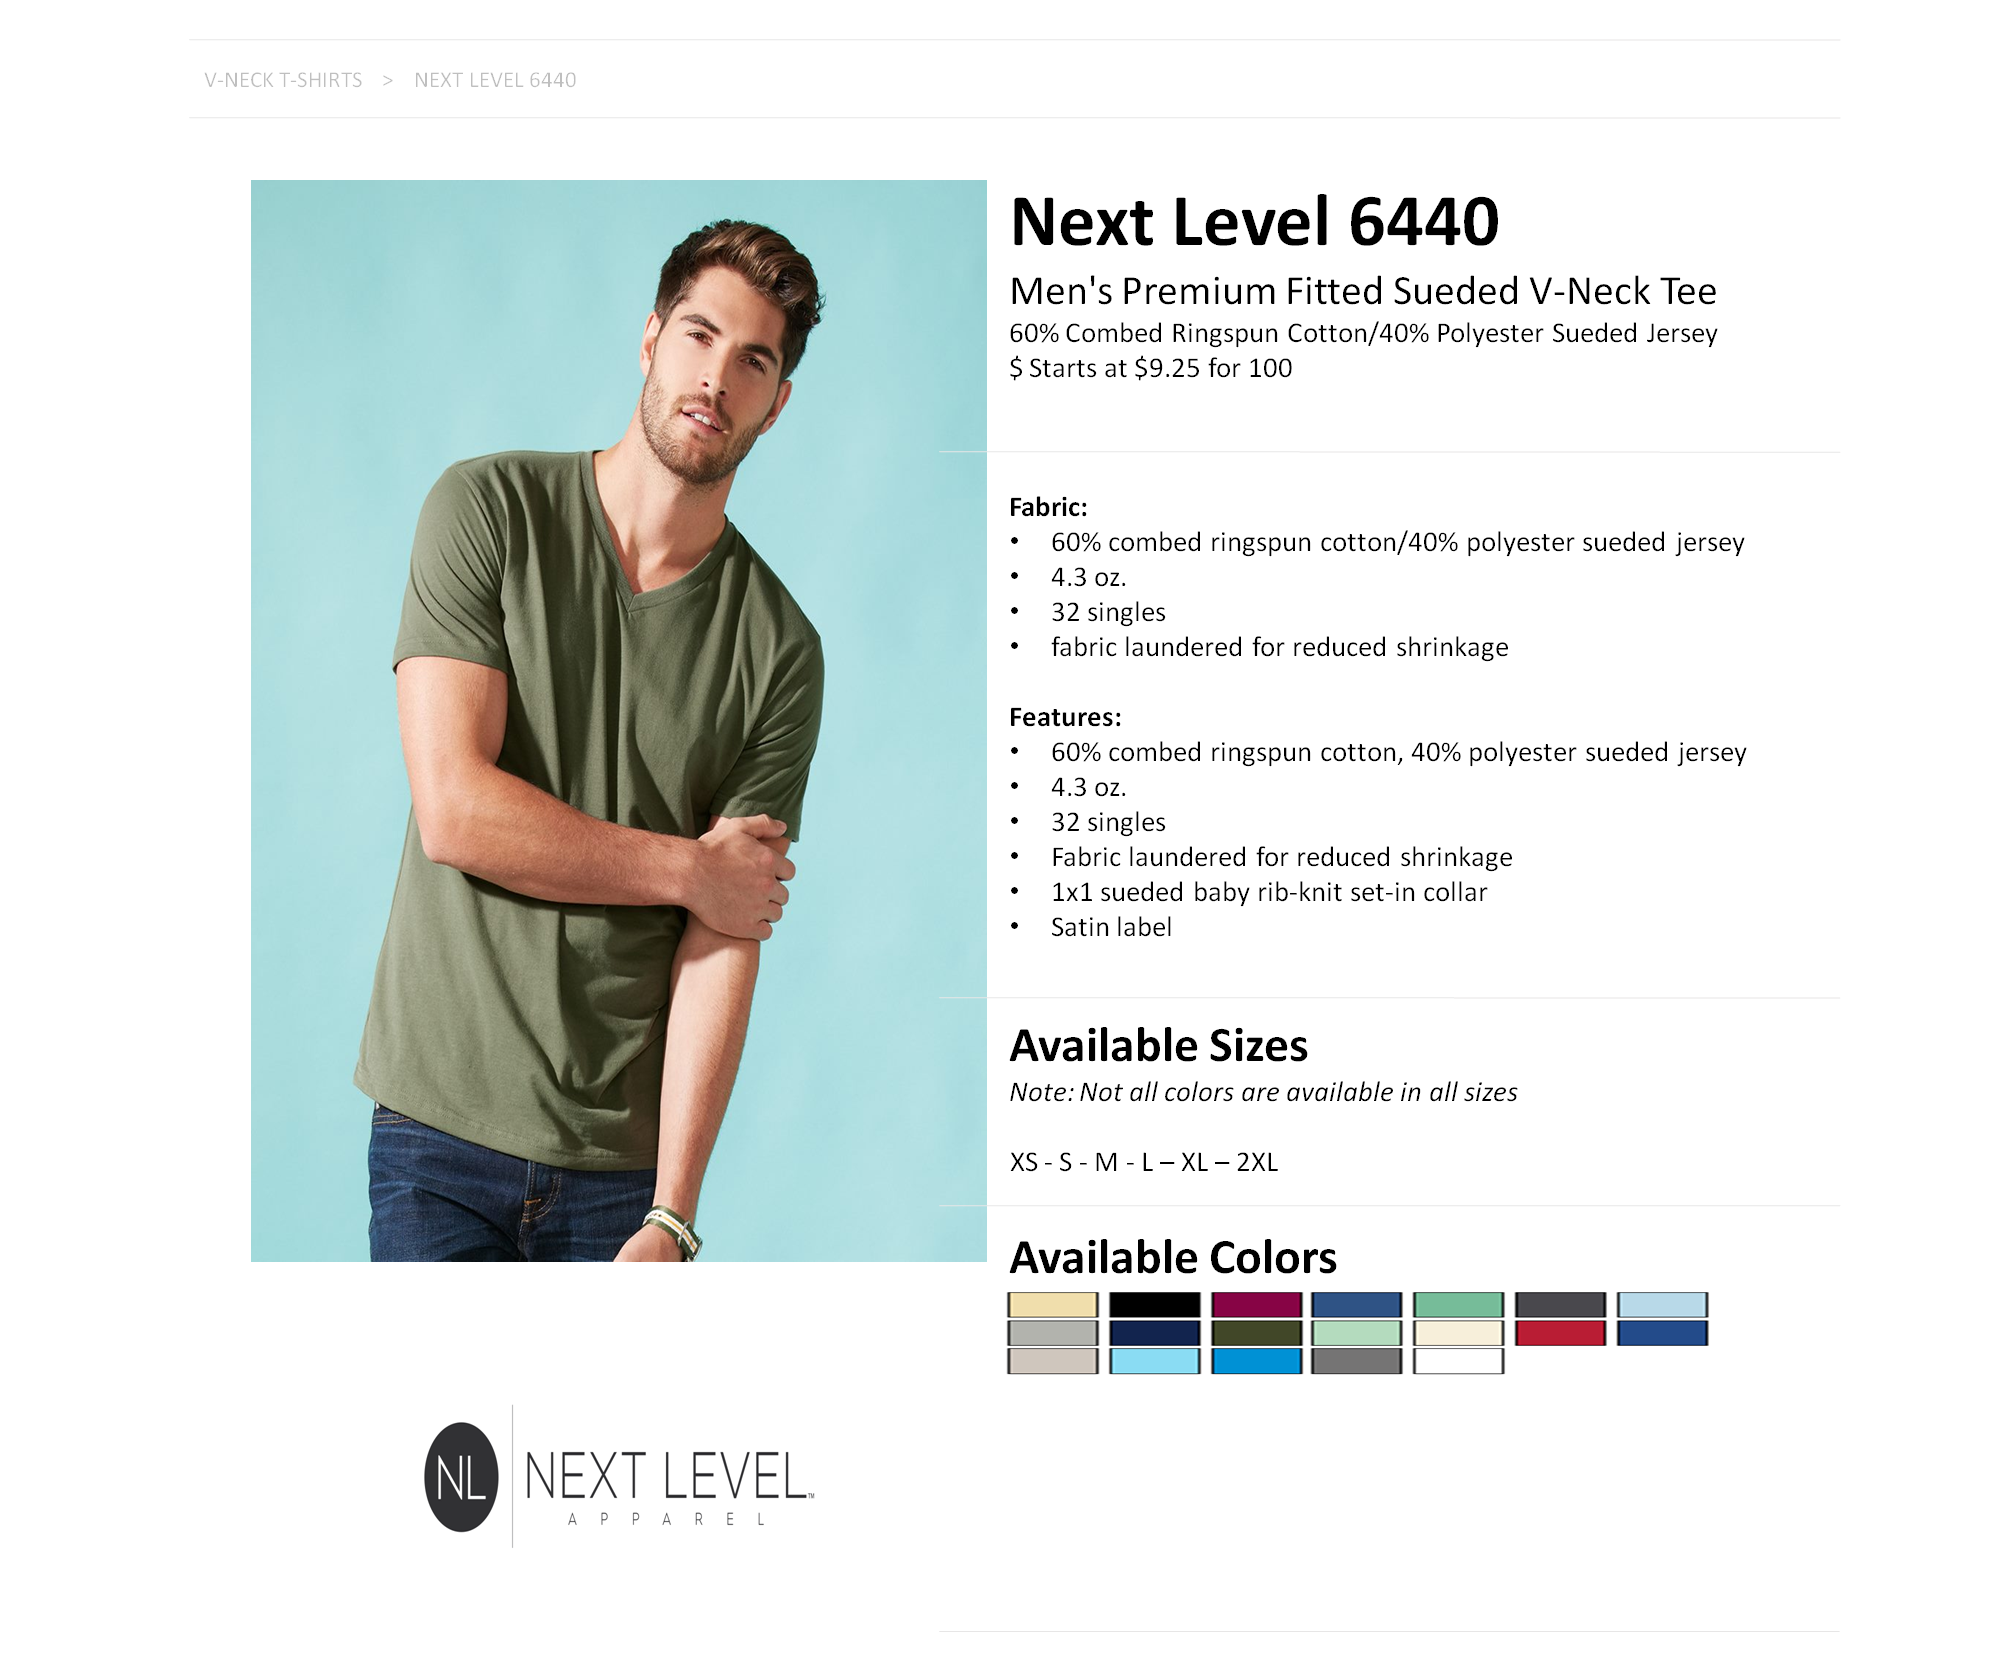 795f49ca3152 6440 Next Level Men's Premium Fitted Sueded V-Neck Tee — American Icon  Merchandise